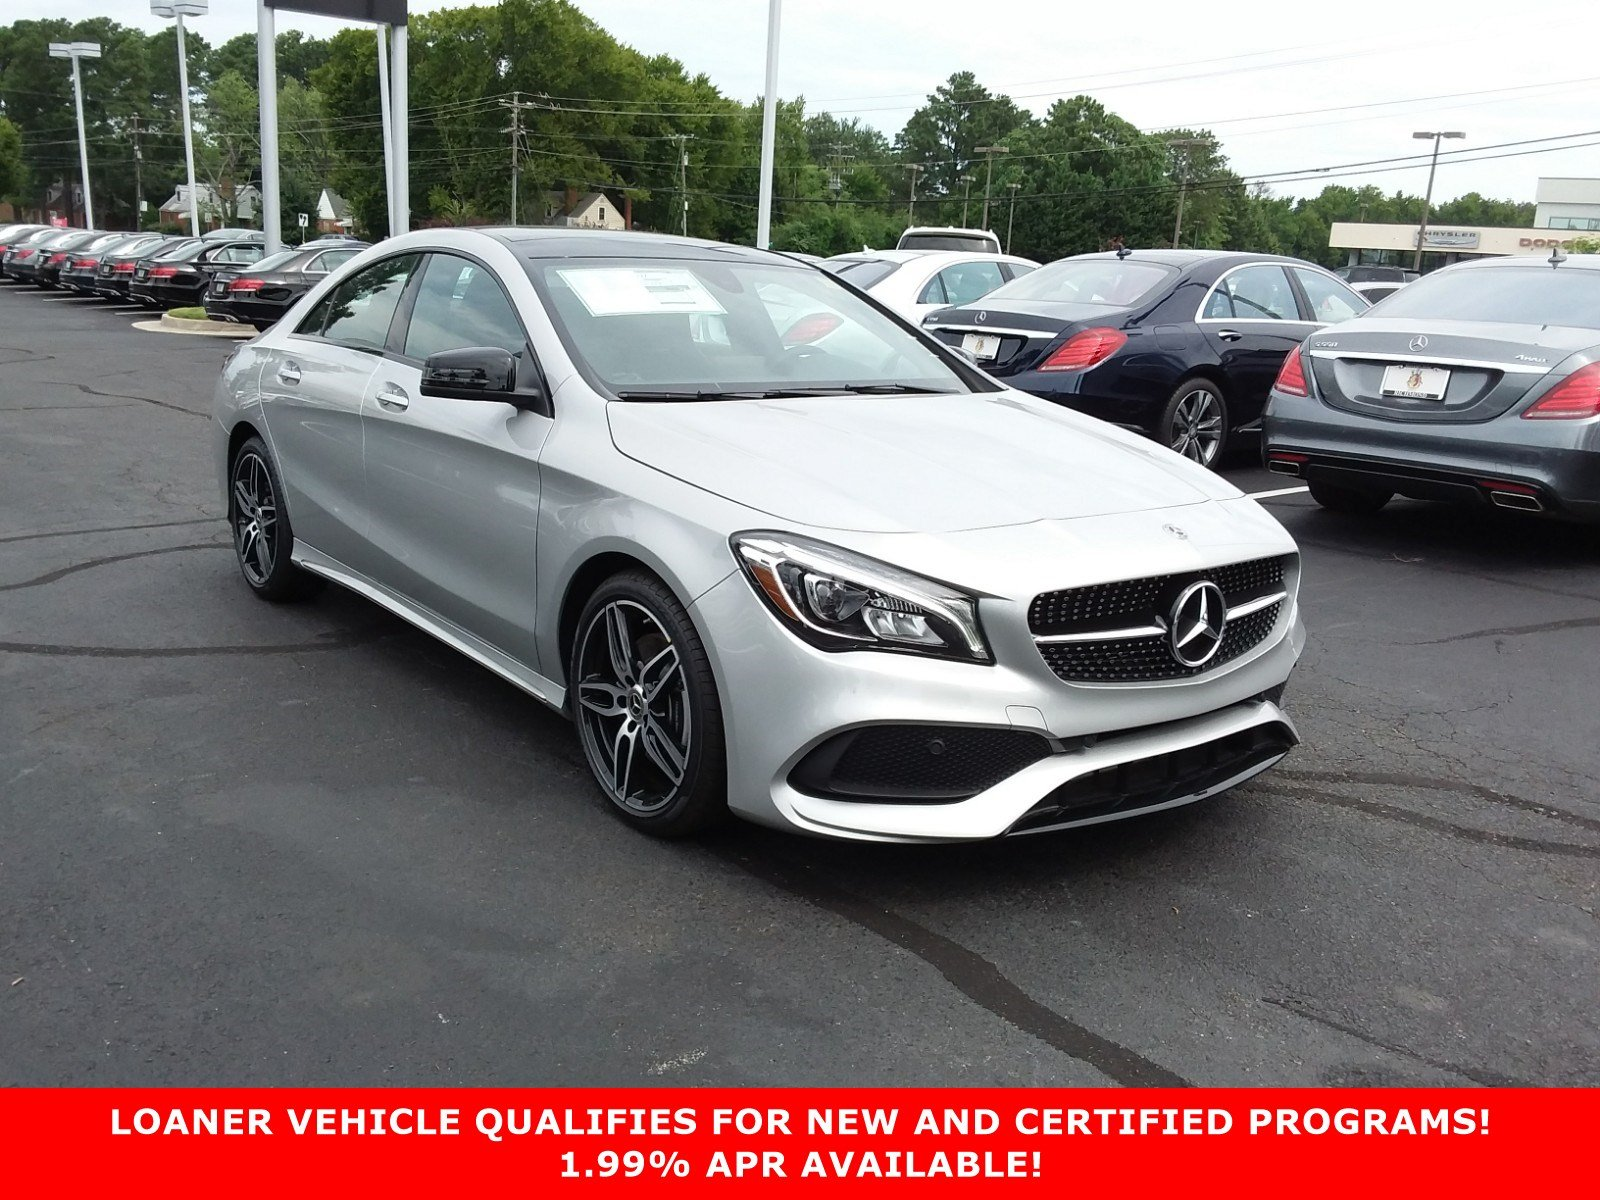 Mercedes Benz Cla >> 2019 Mercedes Benz Cla 250 Awd 4matic